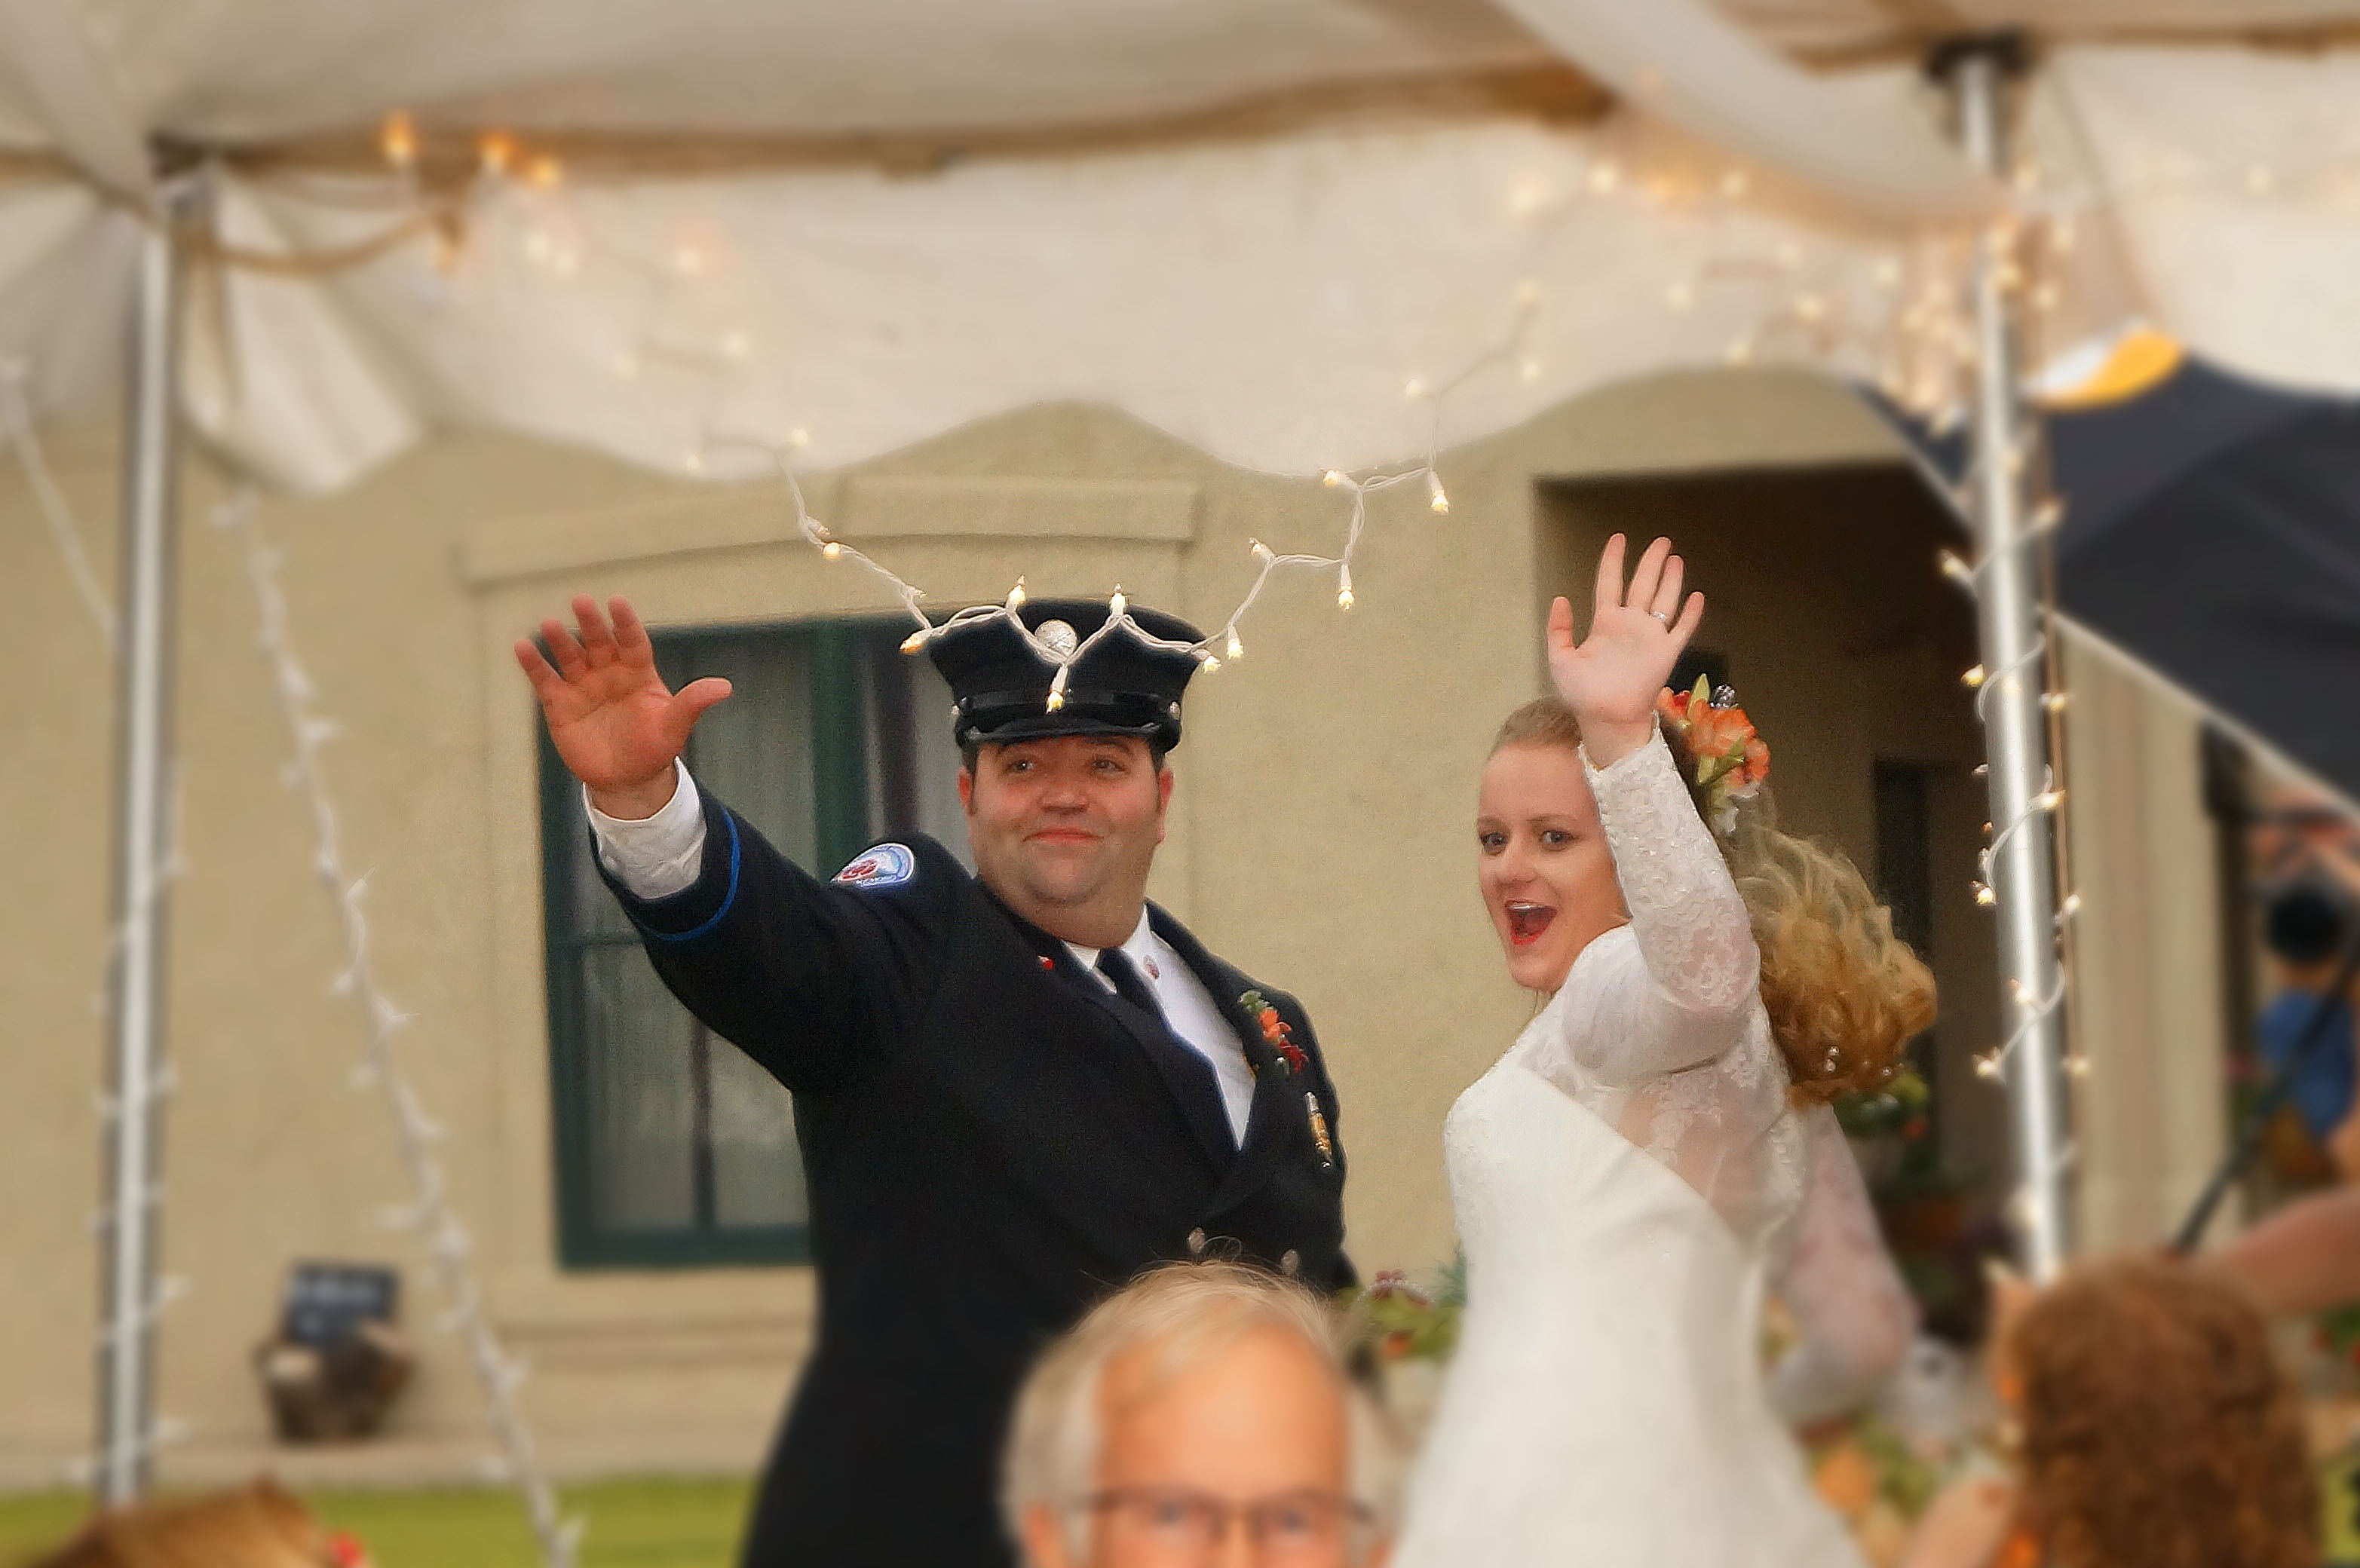 Newly married couple waving to crowd